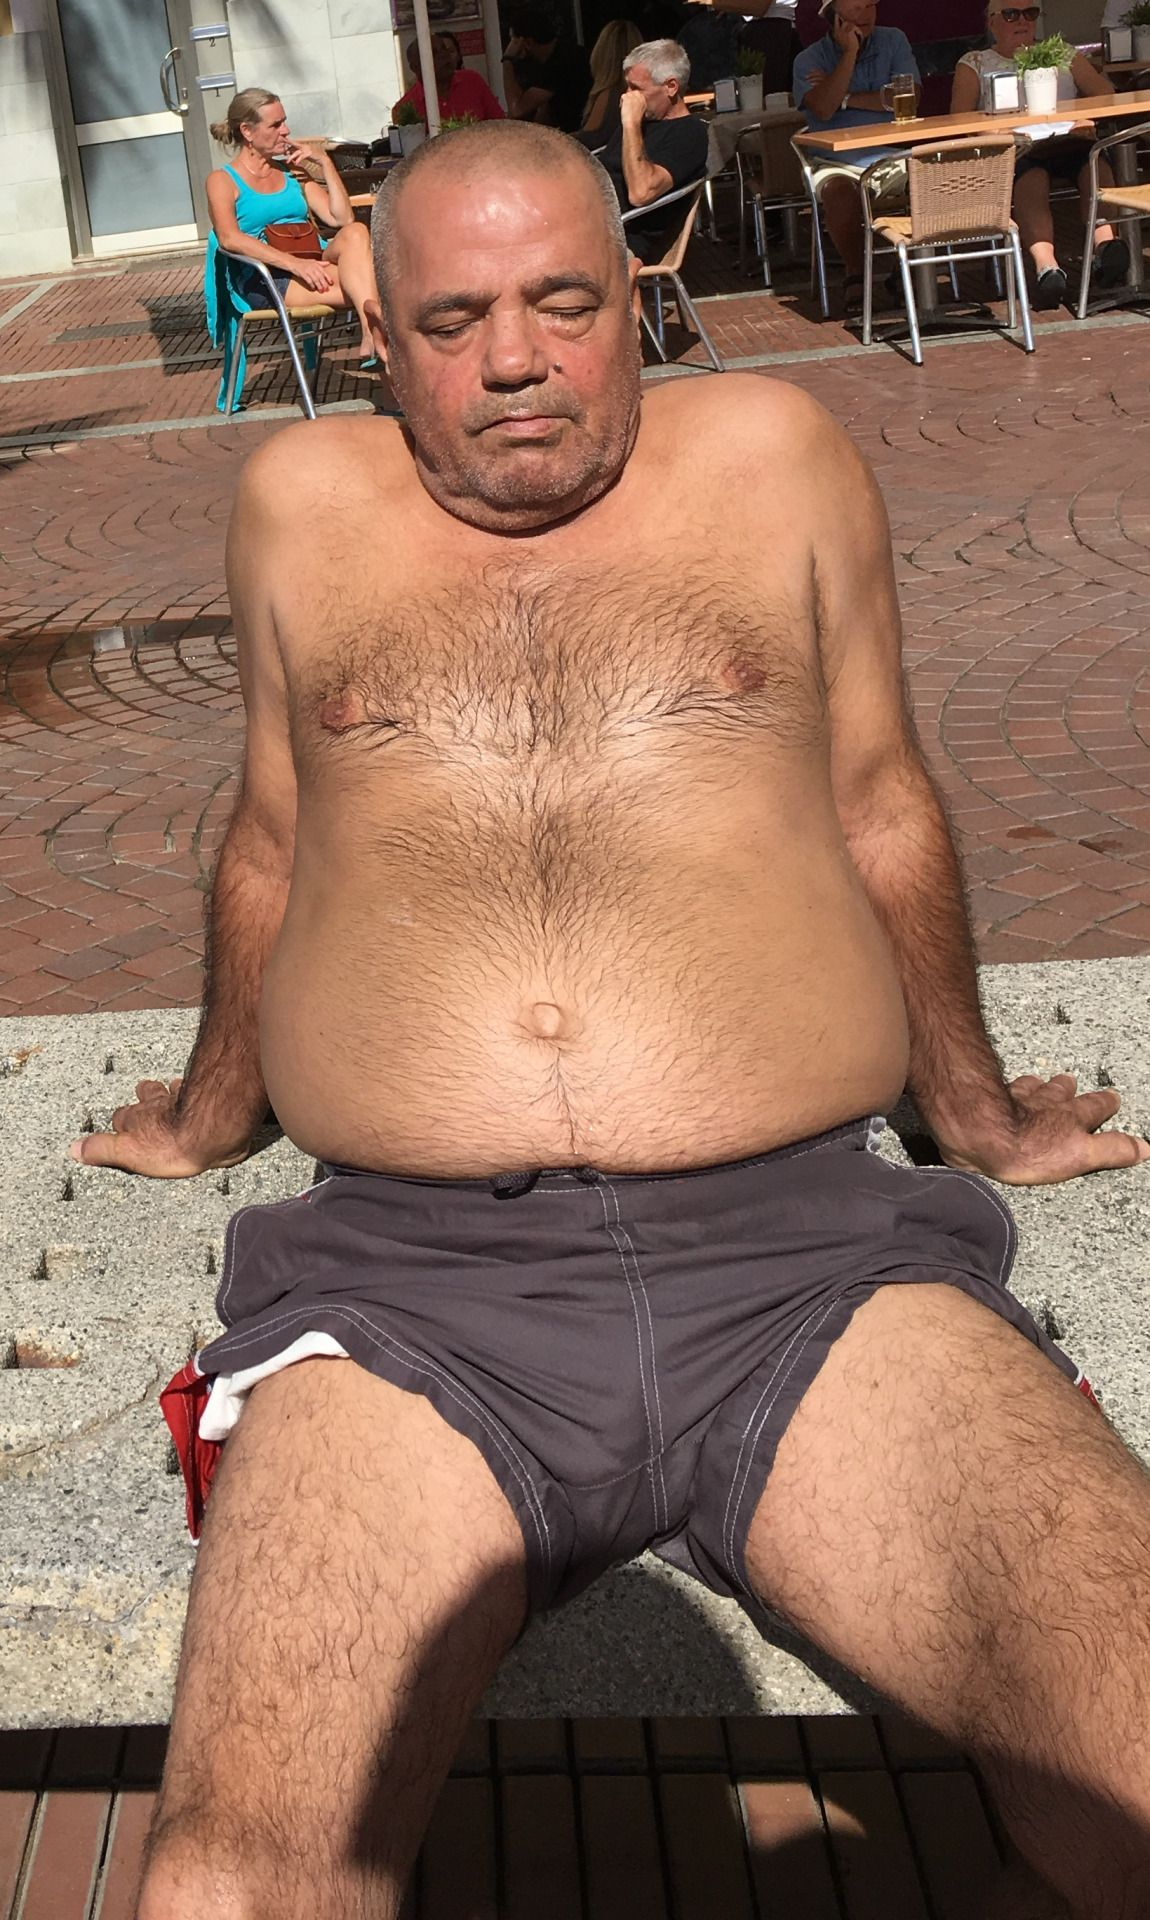 chubby-men-with-muscular-calves-sex-tape-nude-tilla-tequila